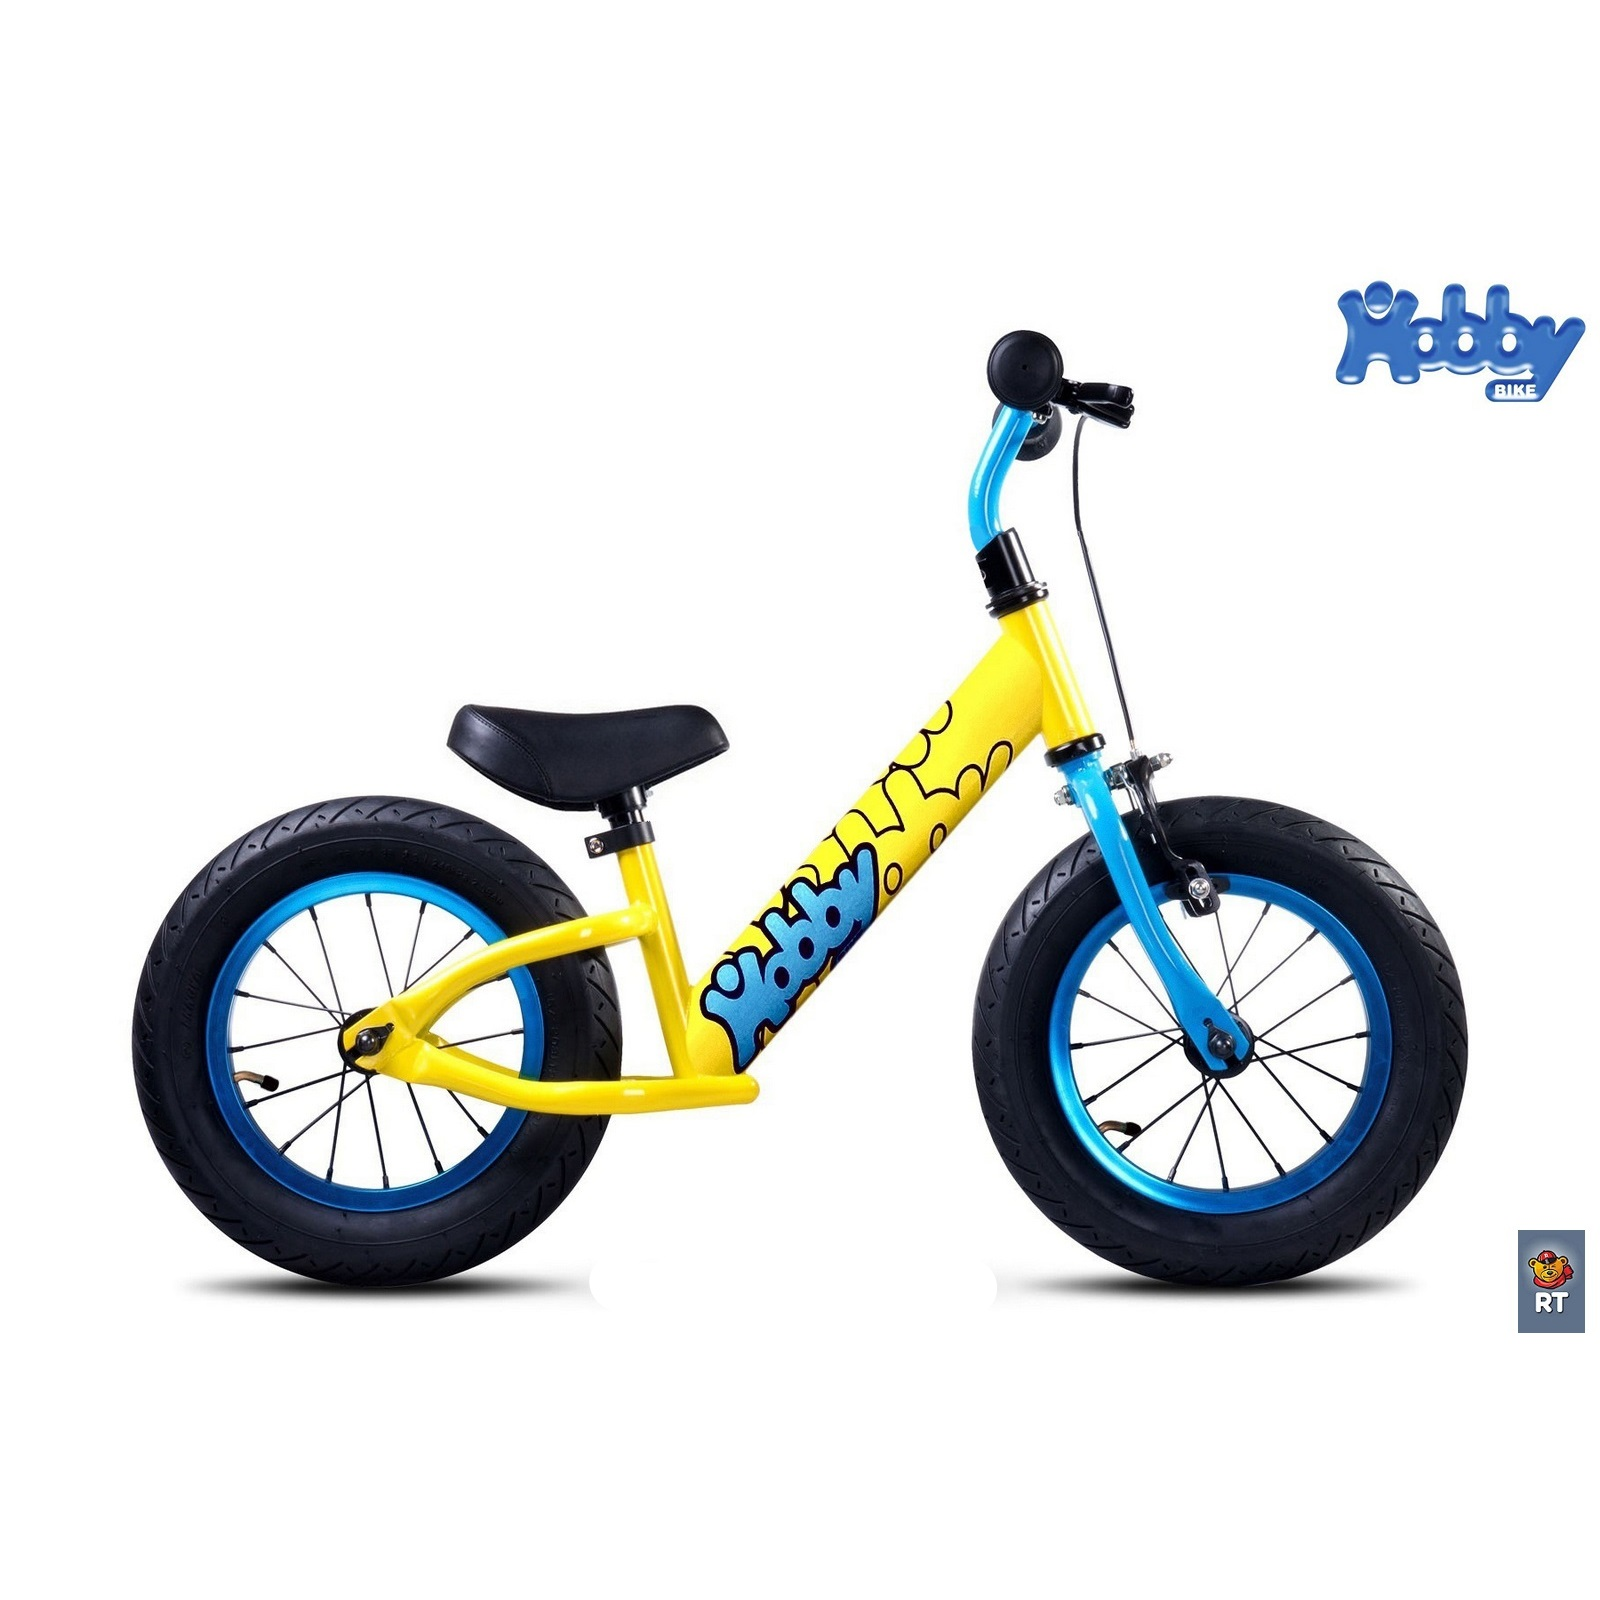 ������������ Hobby-bike Balance Forty Yellow Aluminium